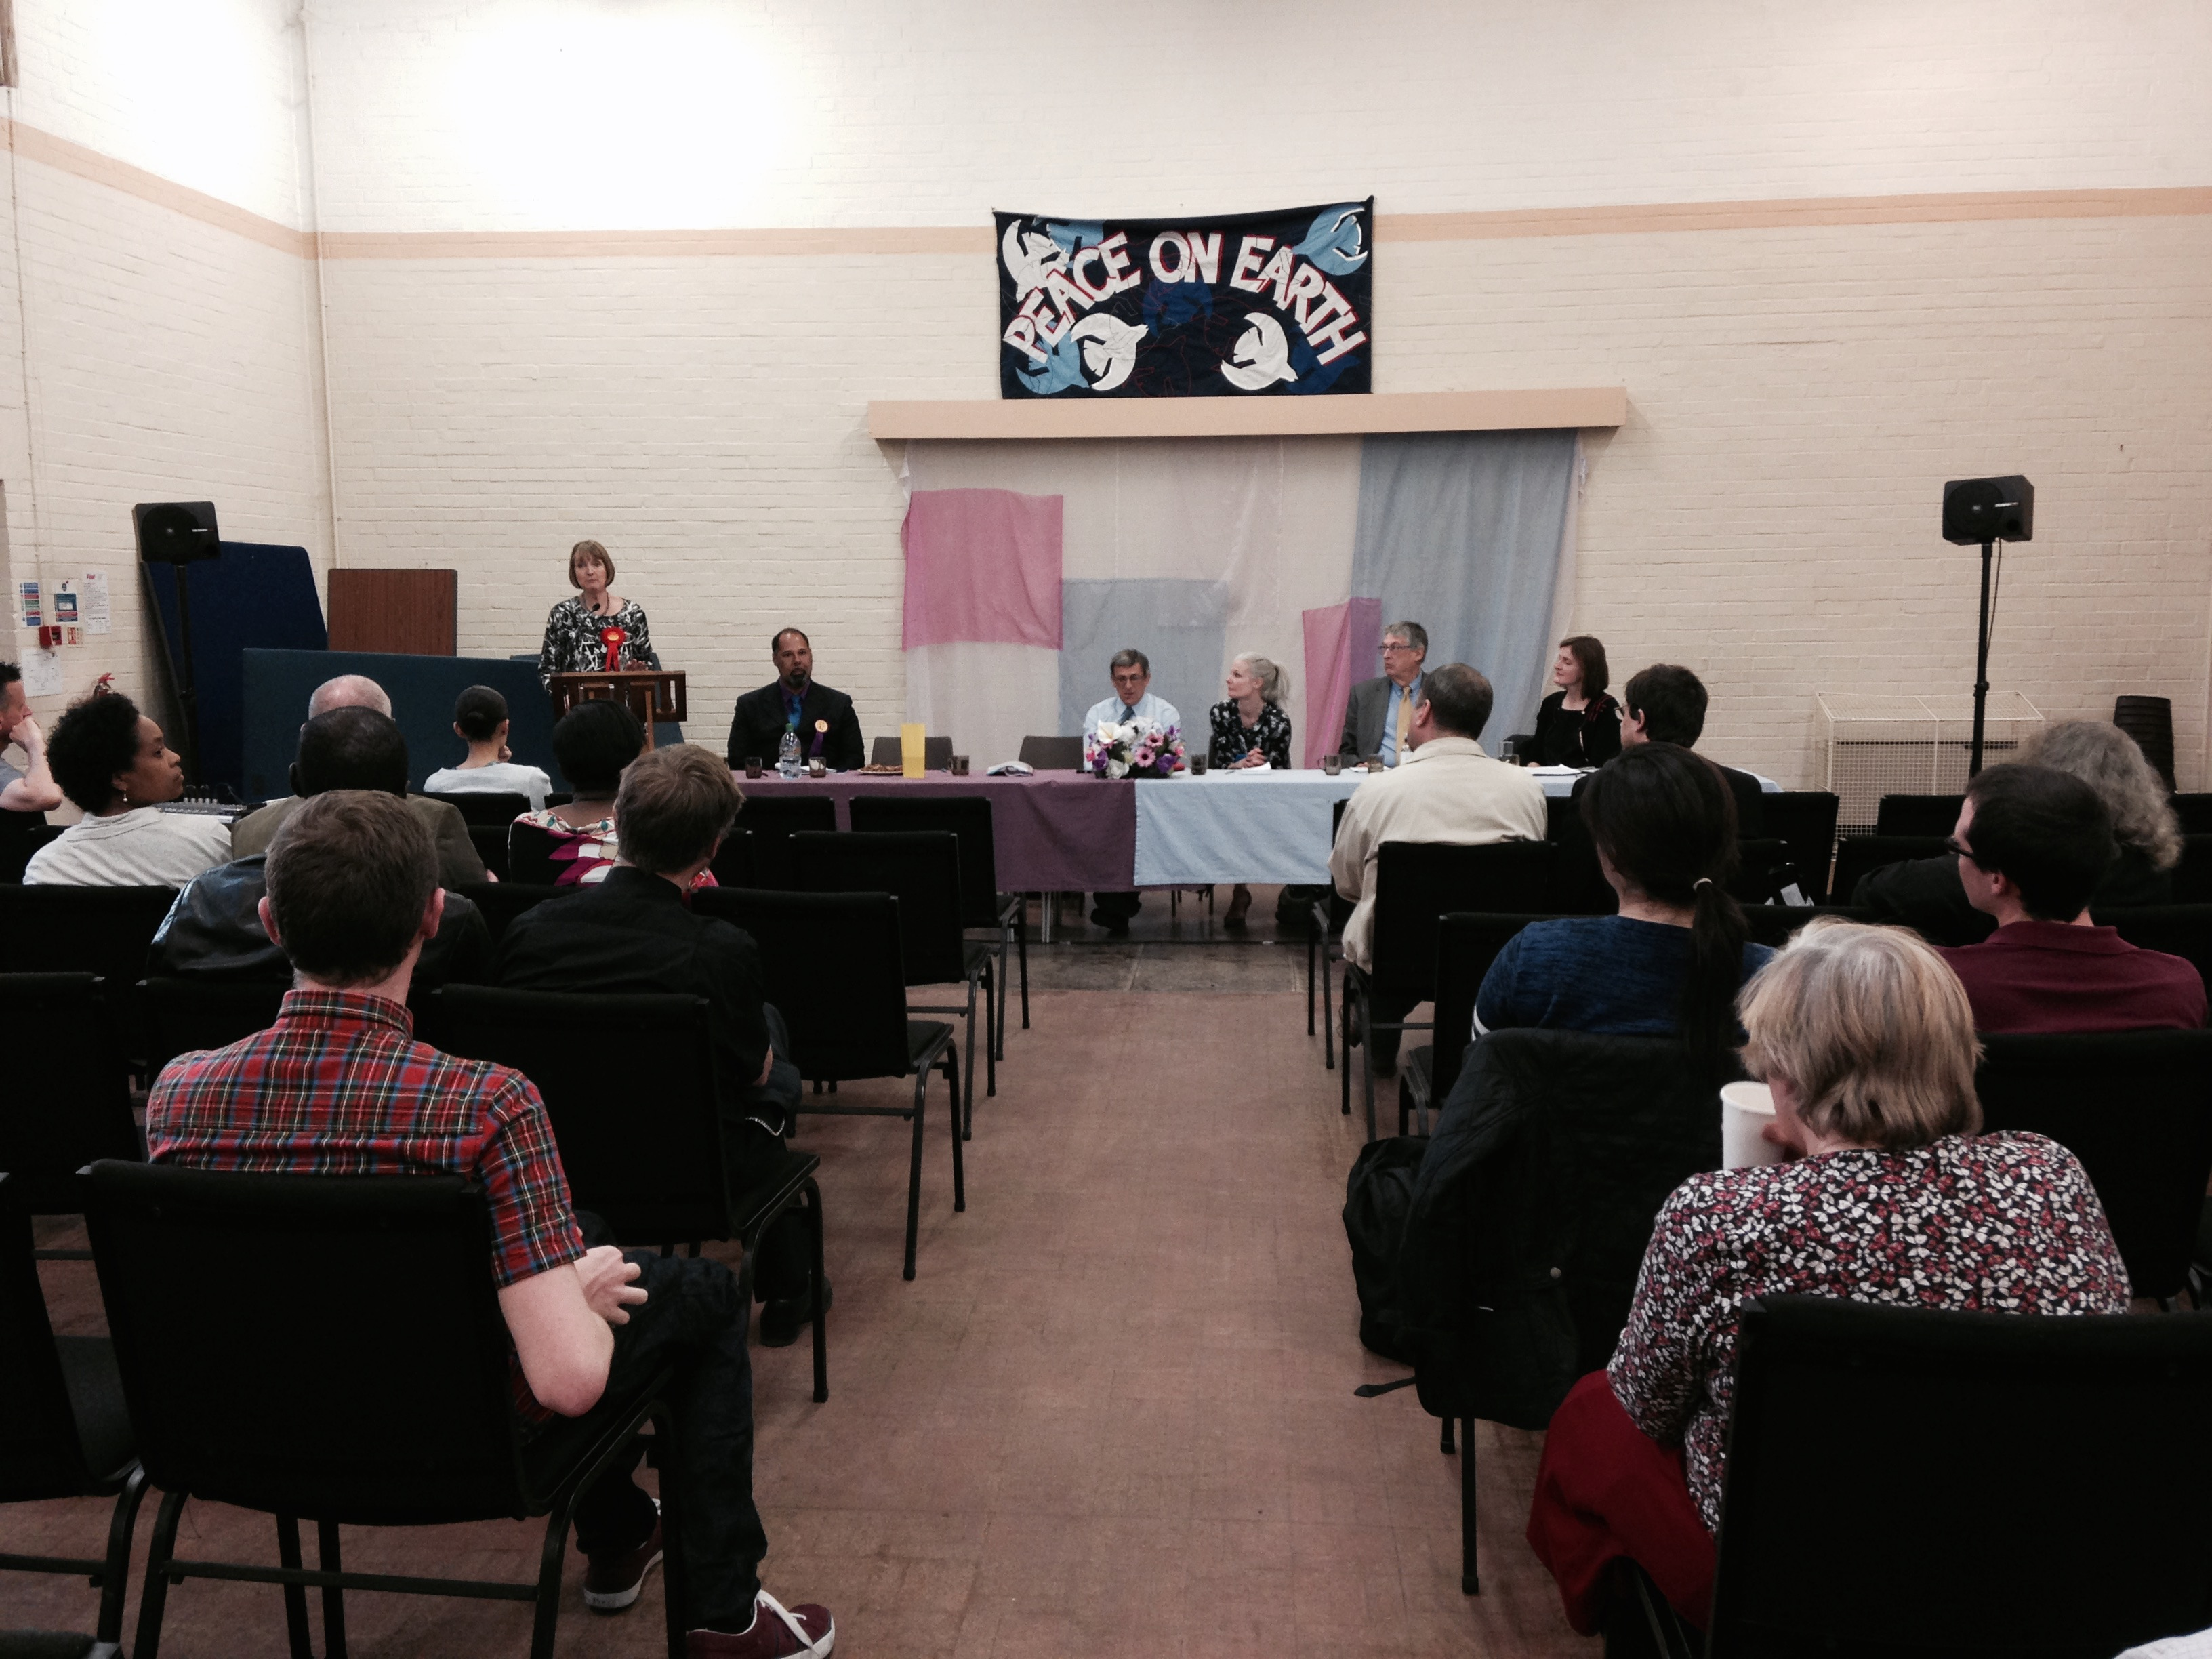 Wyndham_and_Comber_Hustings_15.4.15.jpg